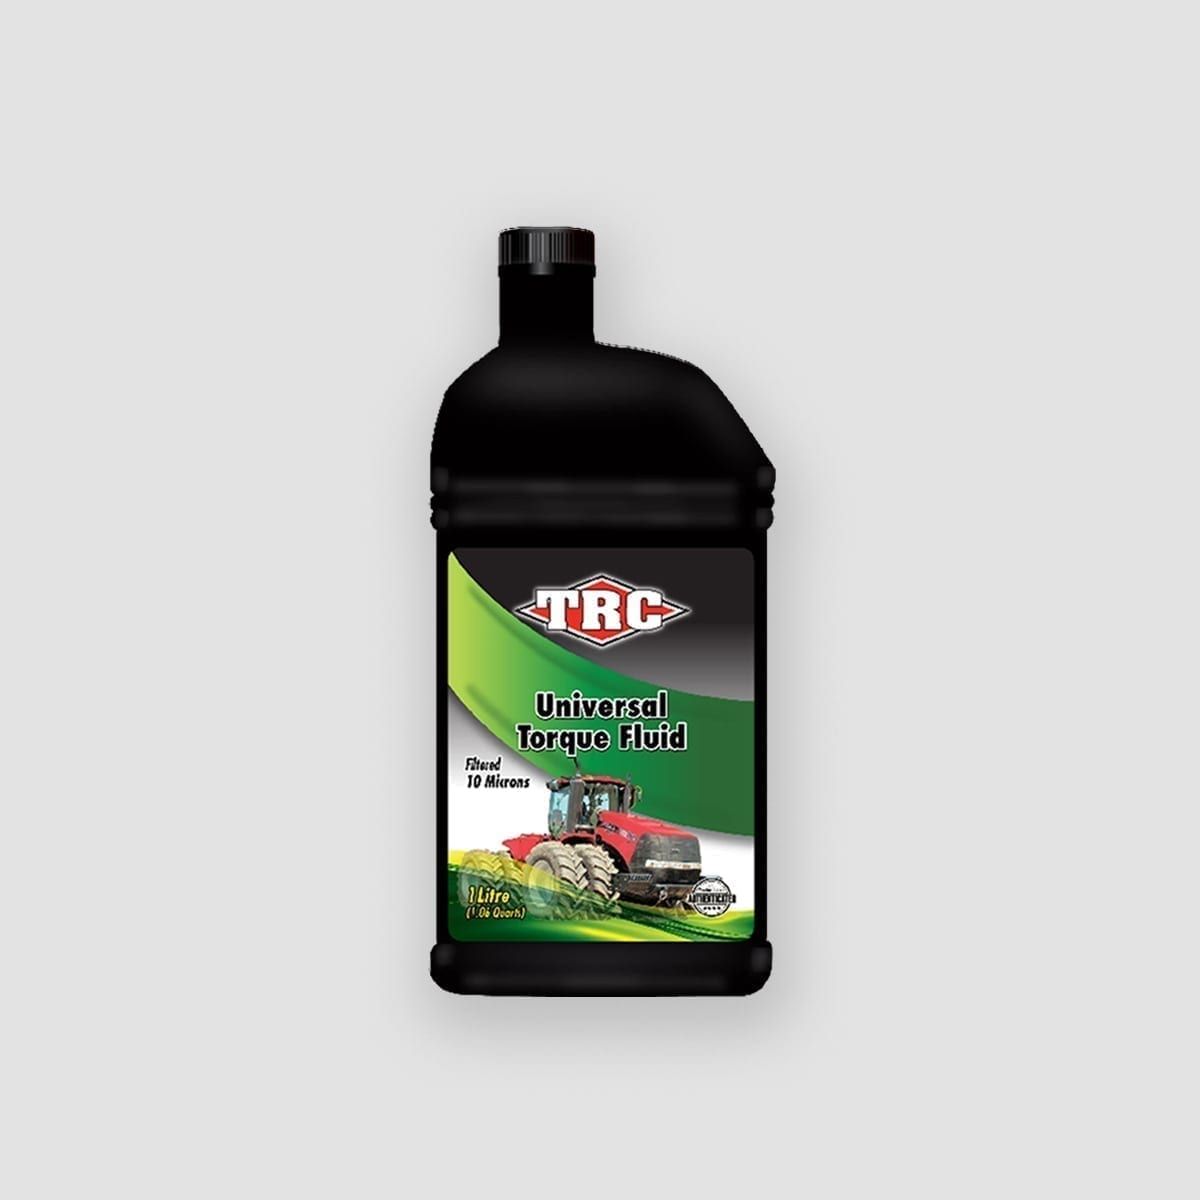 trc-universal-torque-fluid-01-french